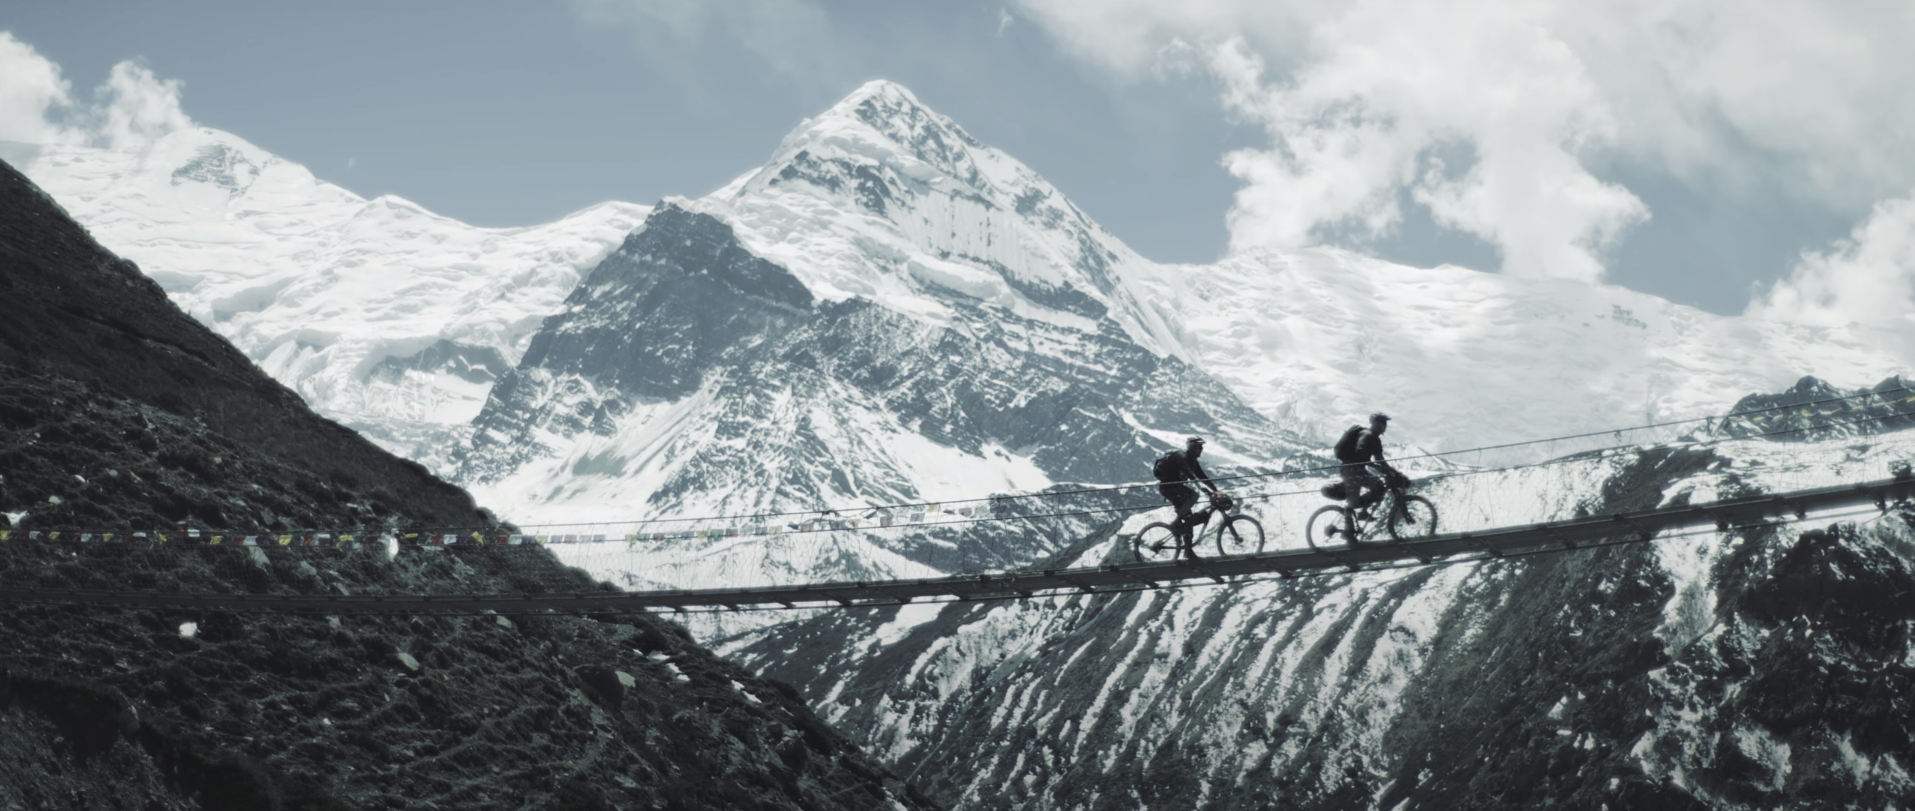 The Story Behind the Bicycle: Trip to the Roof of the World